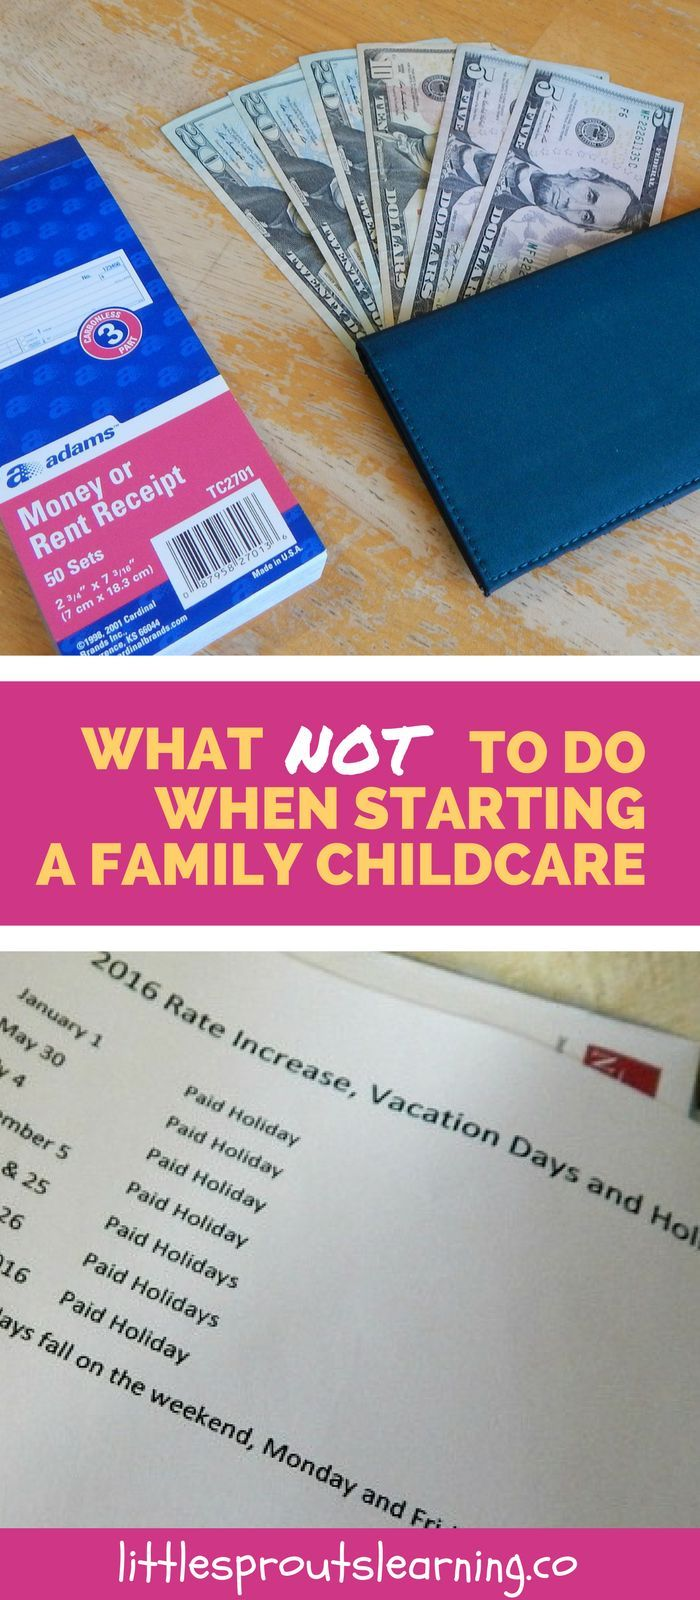 Starting a family childcare can be a daunting task. You wouldn't believe some of the mistakes I have made. I hope I can help you make less and work happier!